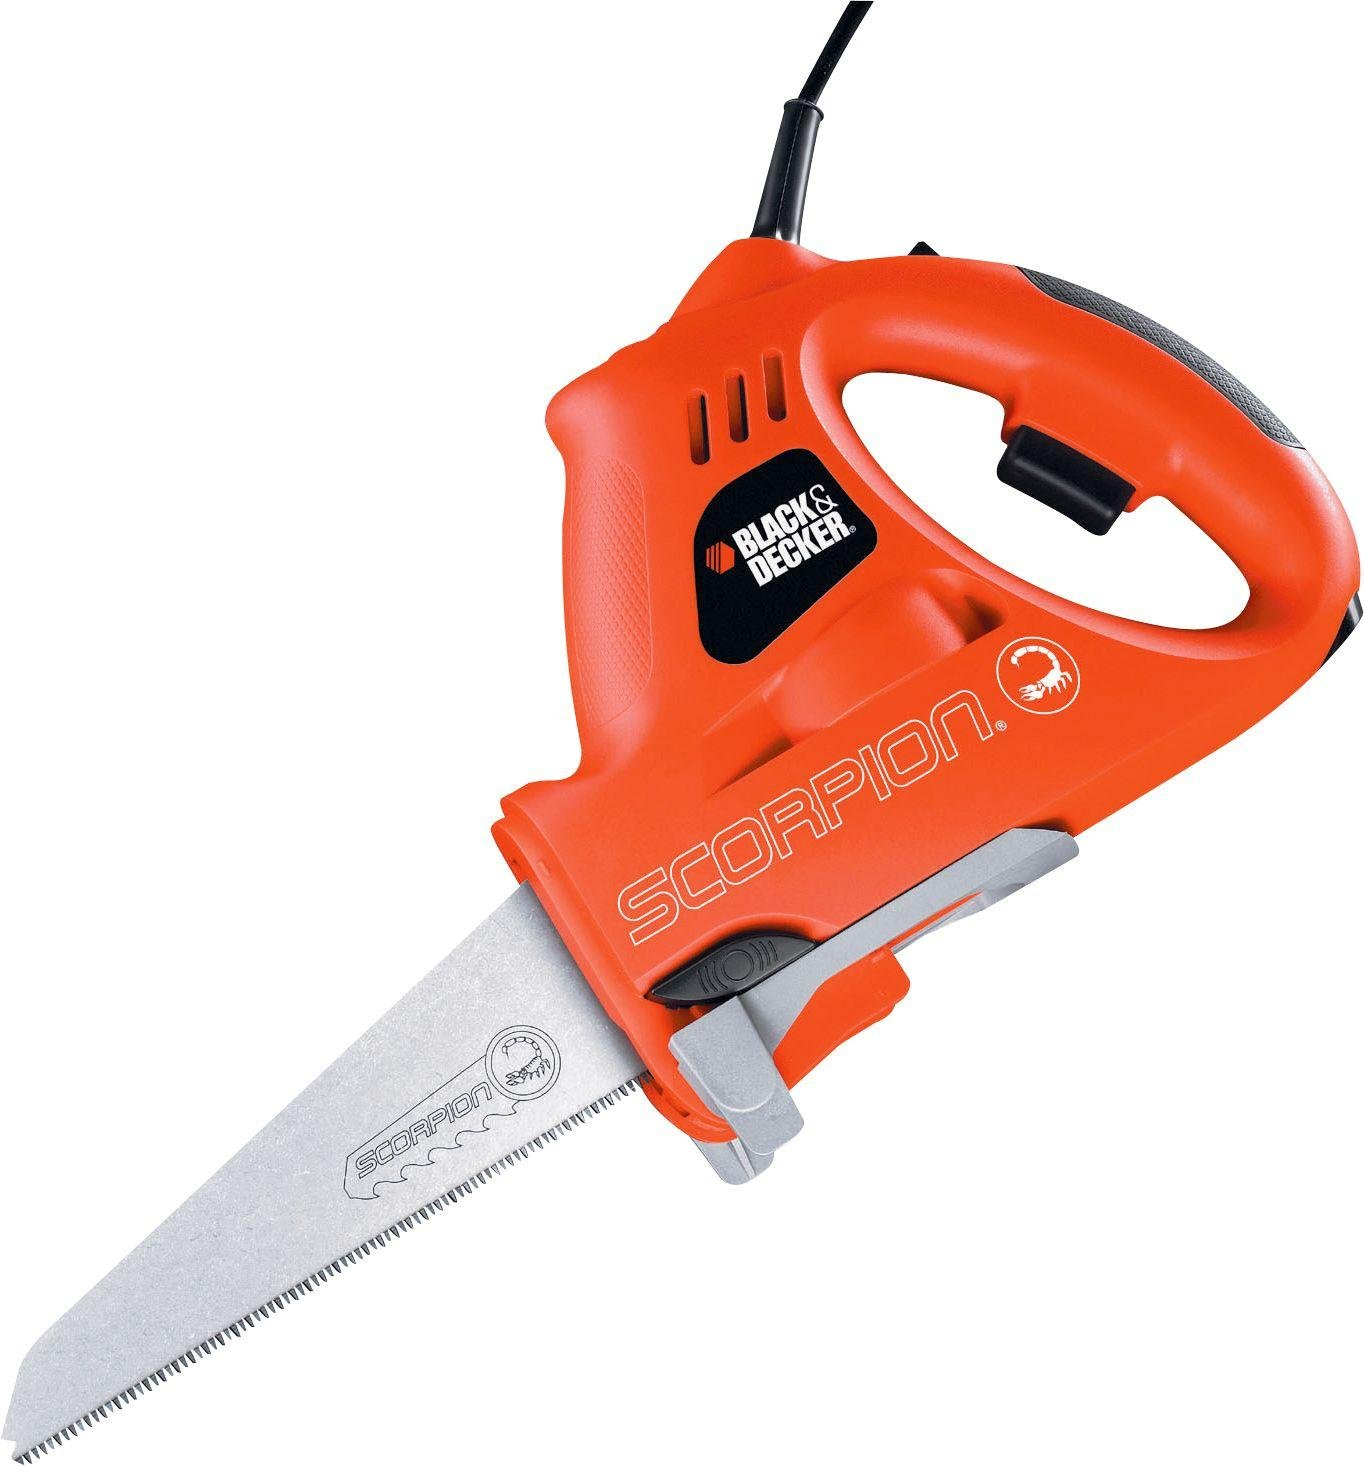 Image of Black and Decker - Scorpion Multifunction Saw - 400W